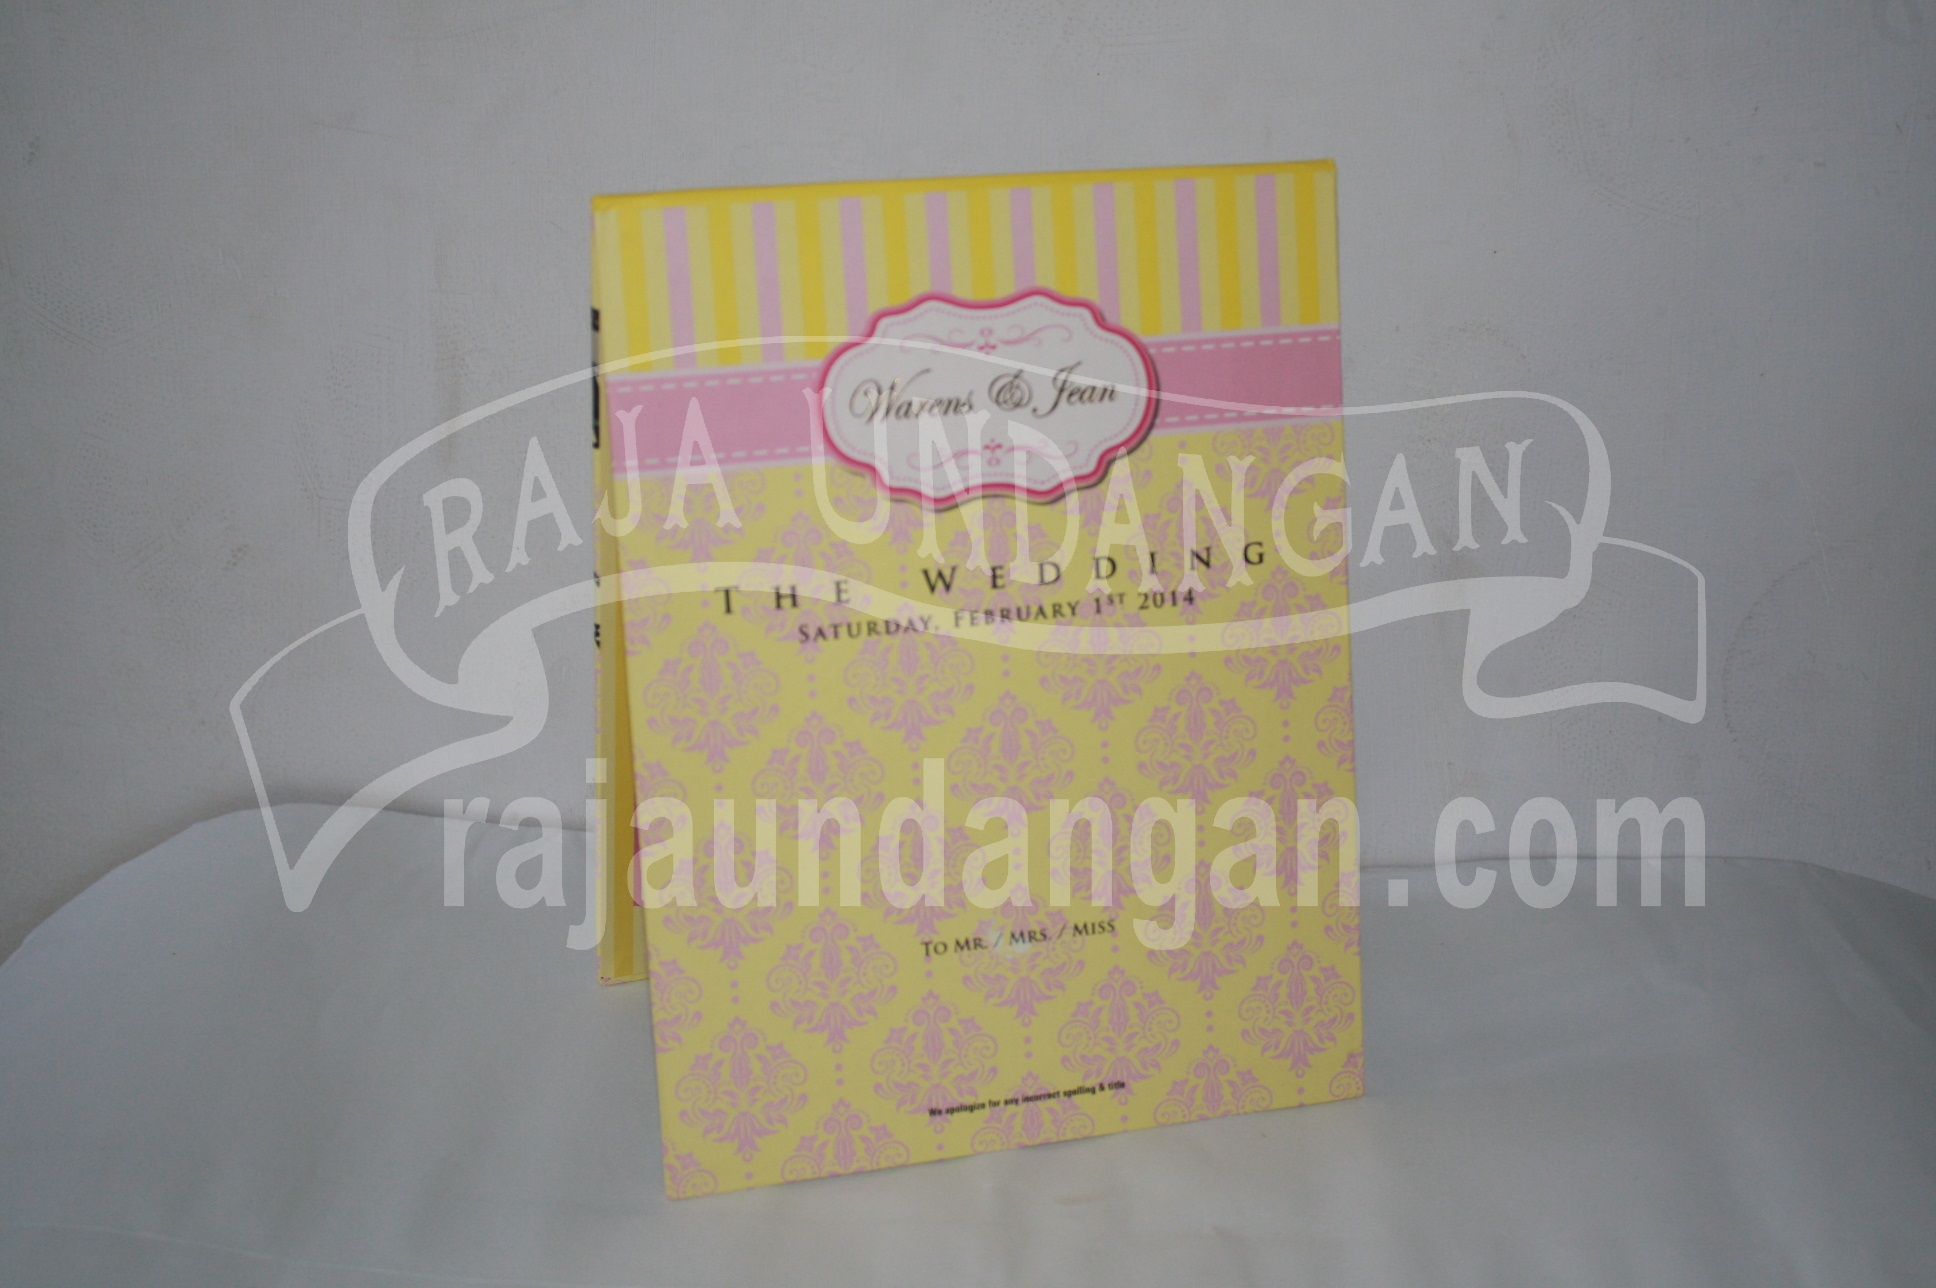 Undangan Pernikahan Hardcover Pop Up Warens dan Jean EDC 50 - Membuat Wedding Invitations Simple di Simokerto